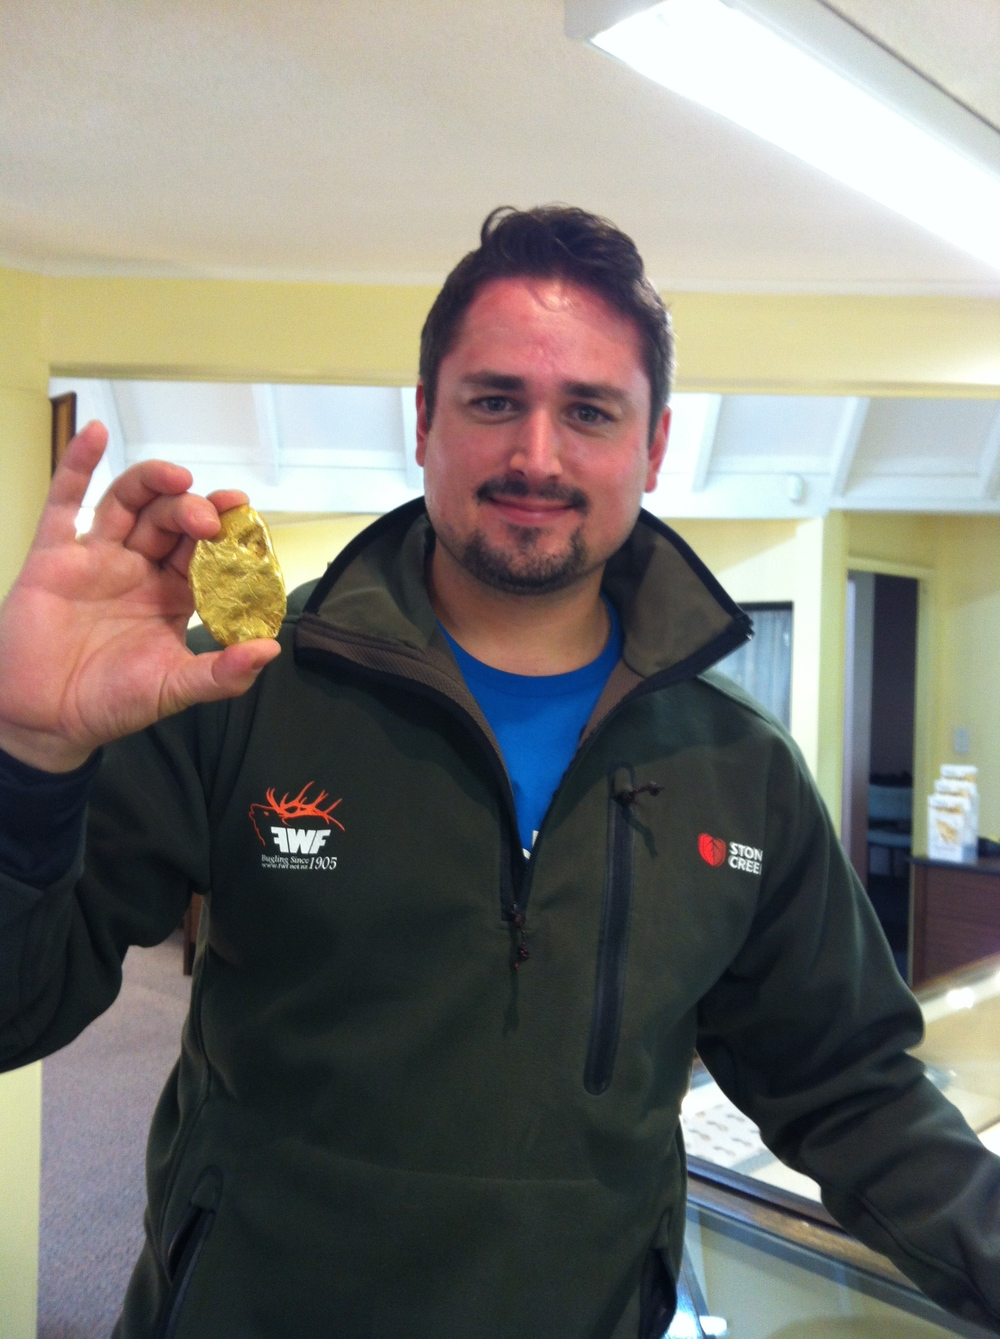 Joe showing off the massive gold nugget that was found here in Hokitika.